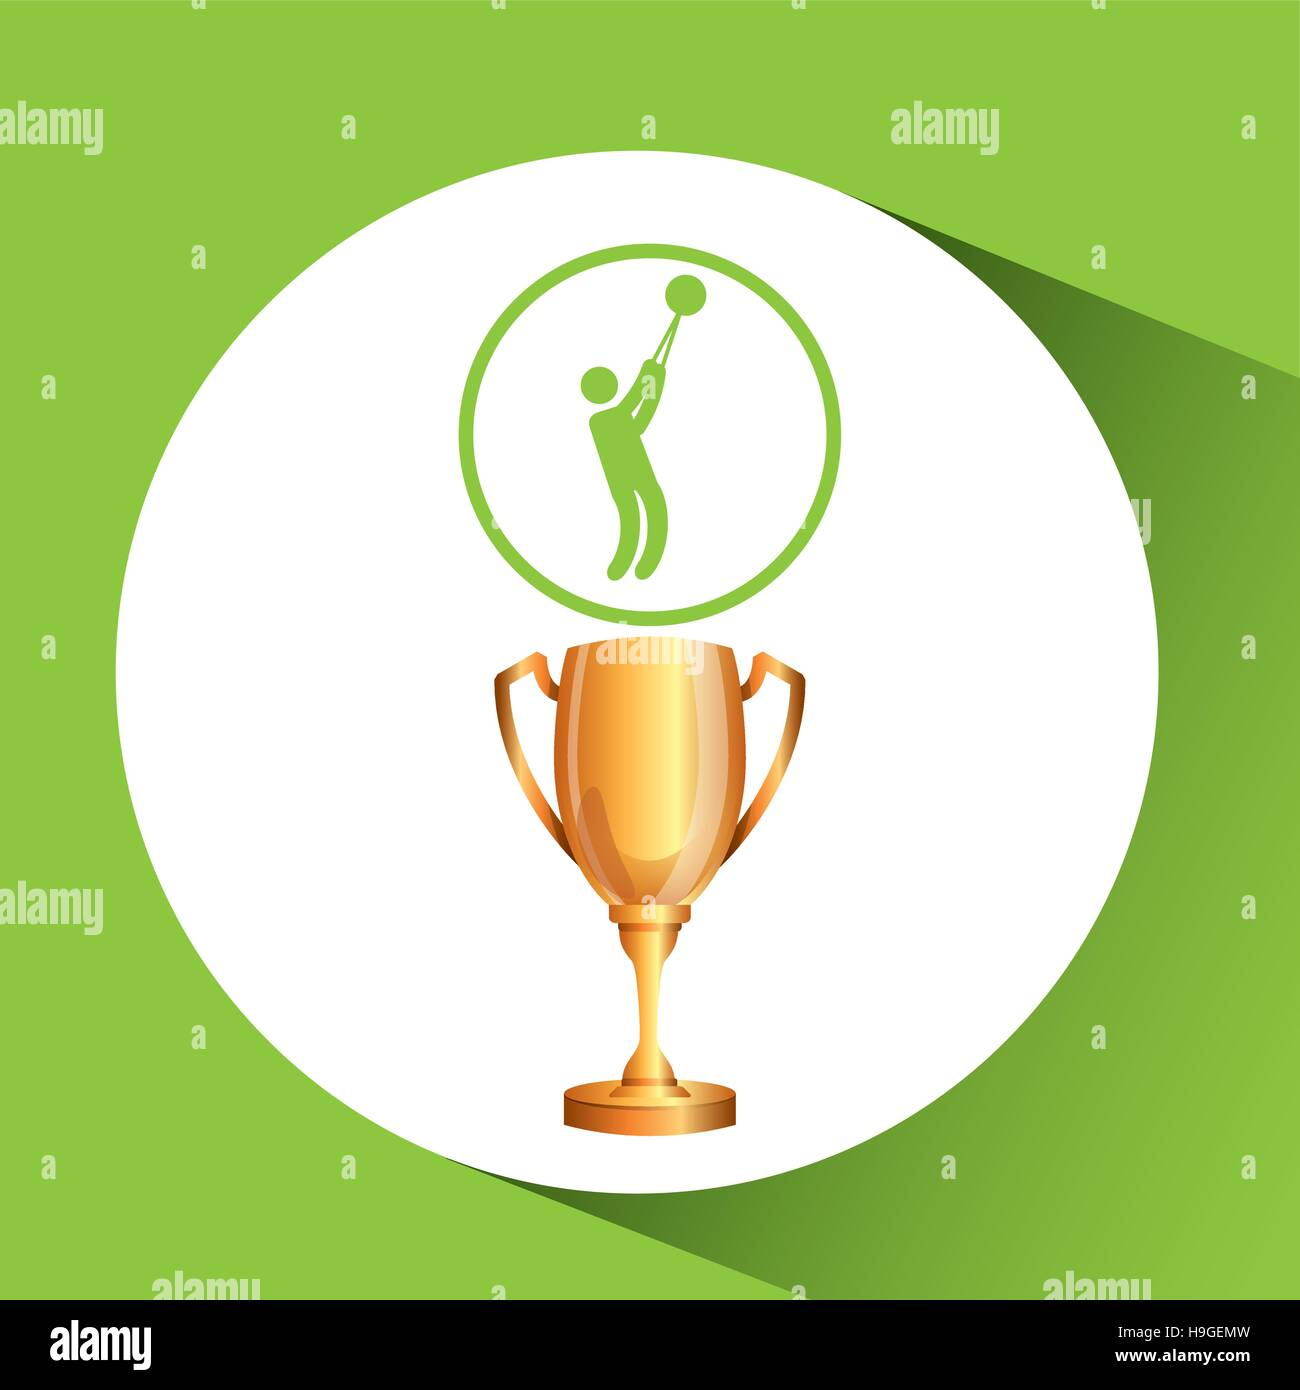 silhouette man hammer throw athlete trophy vector illustration eps 10 Stock Vector